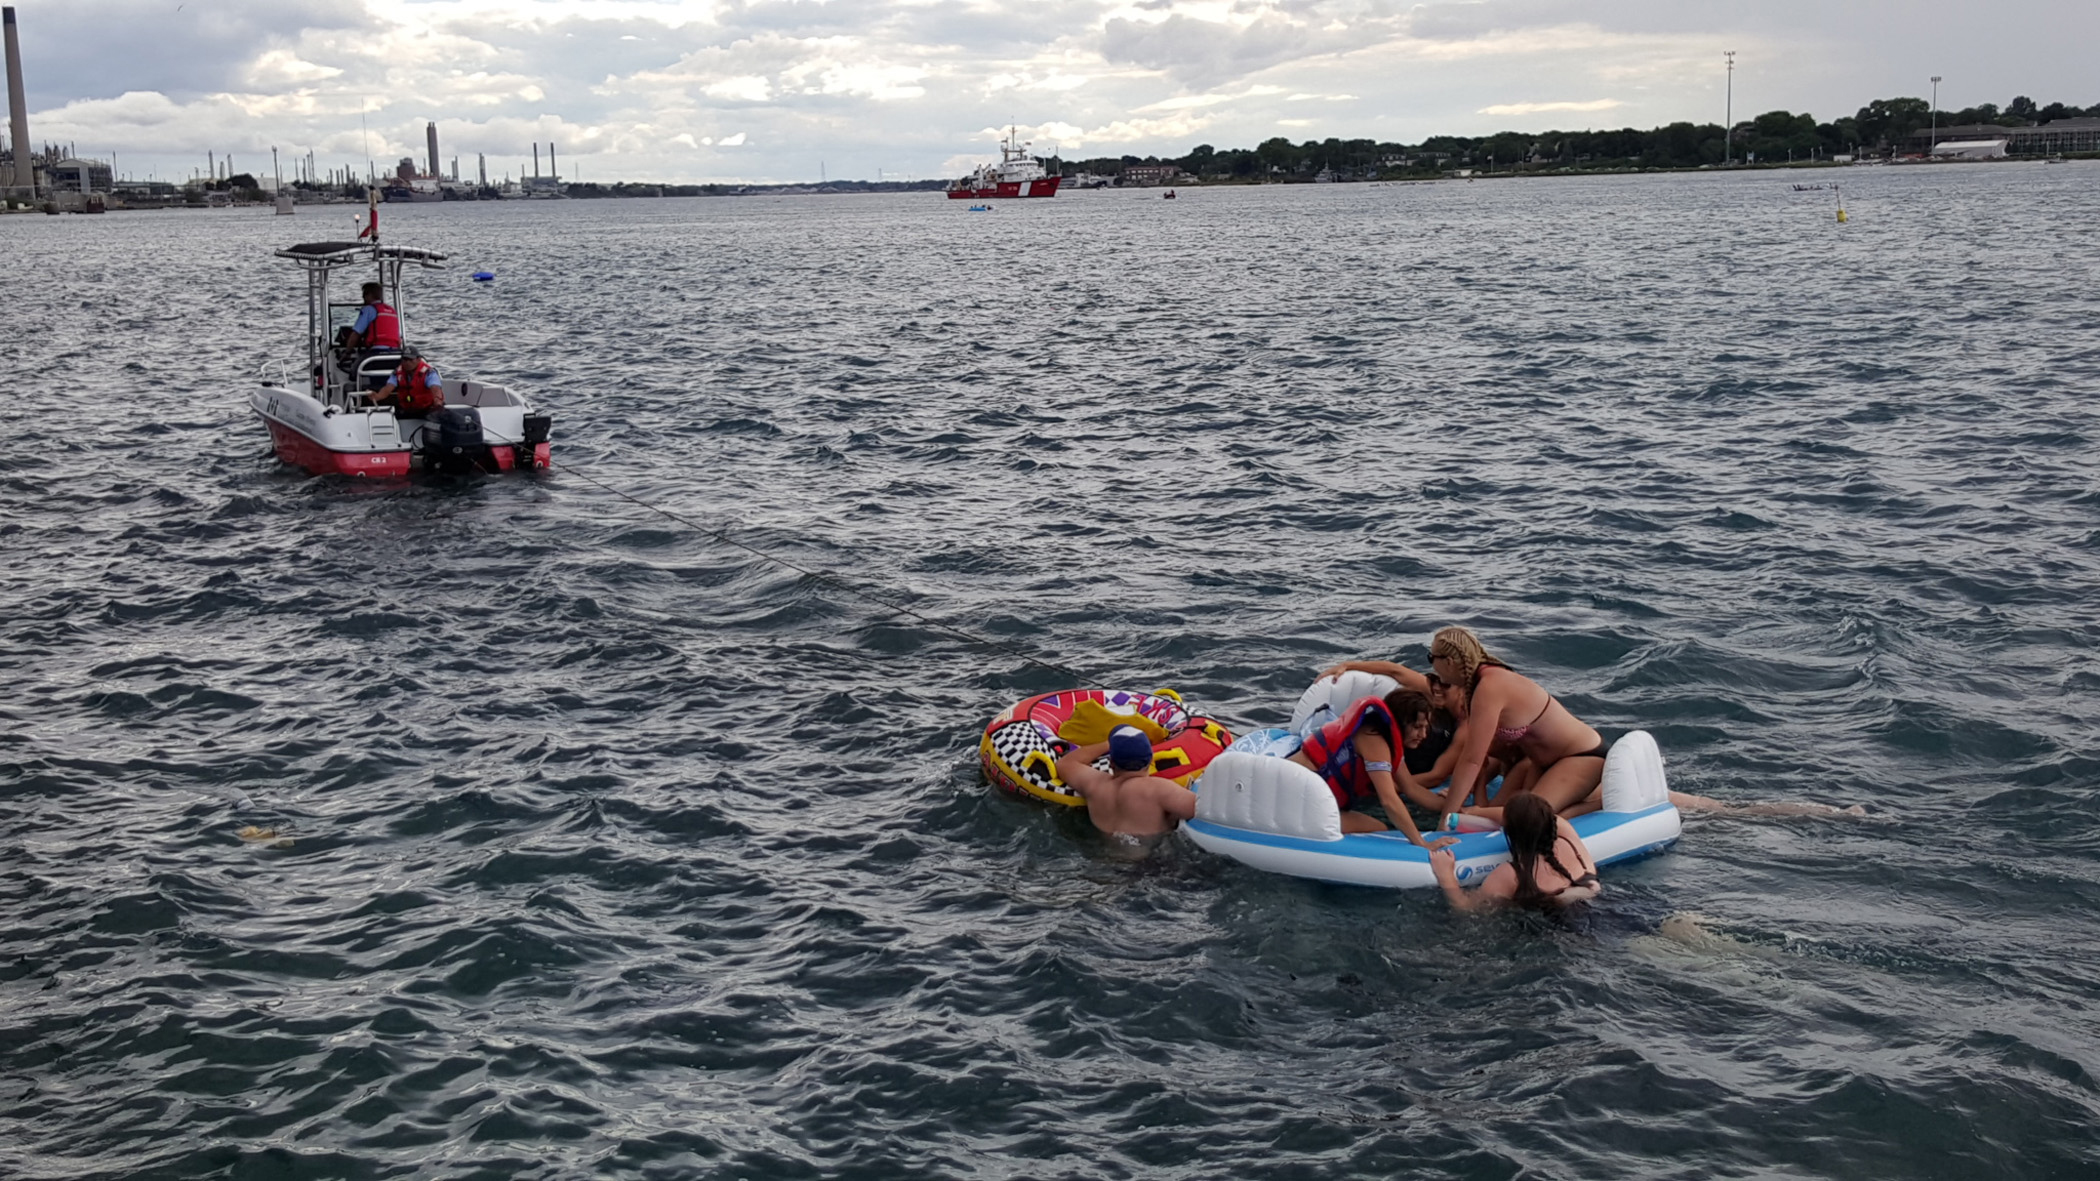 A Canadian Coast Guard ship tows floatation devices used by U.S. partiers to the Canadian side of the St. Clair River between Michigan and Ontario on Aug. 21, 2016.